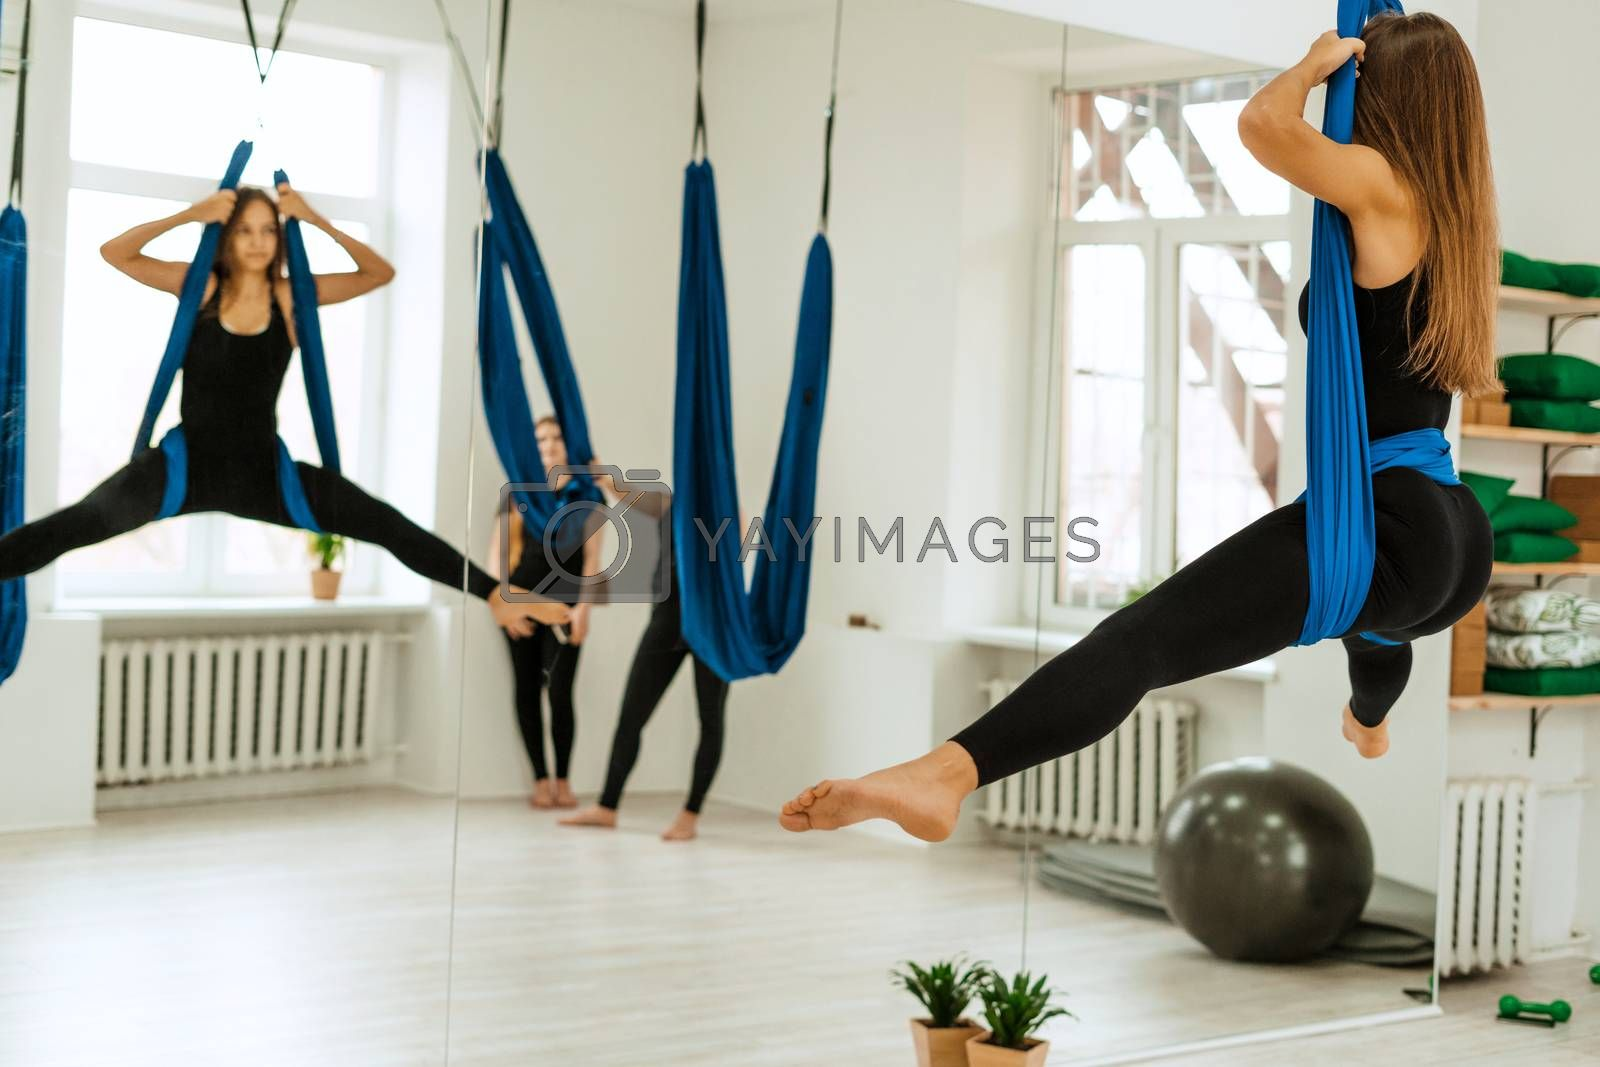 Stretching workout. A group of young girls in black uniforms are doing stretching training in the gym. Akroyoga, yoga, fitness, workout